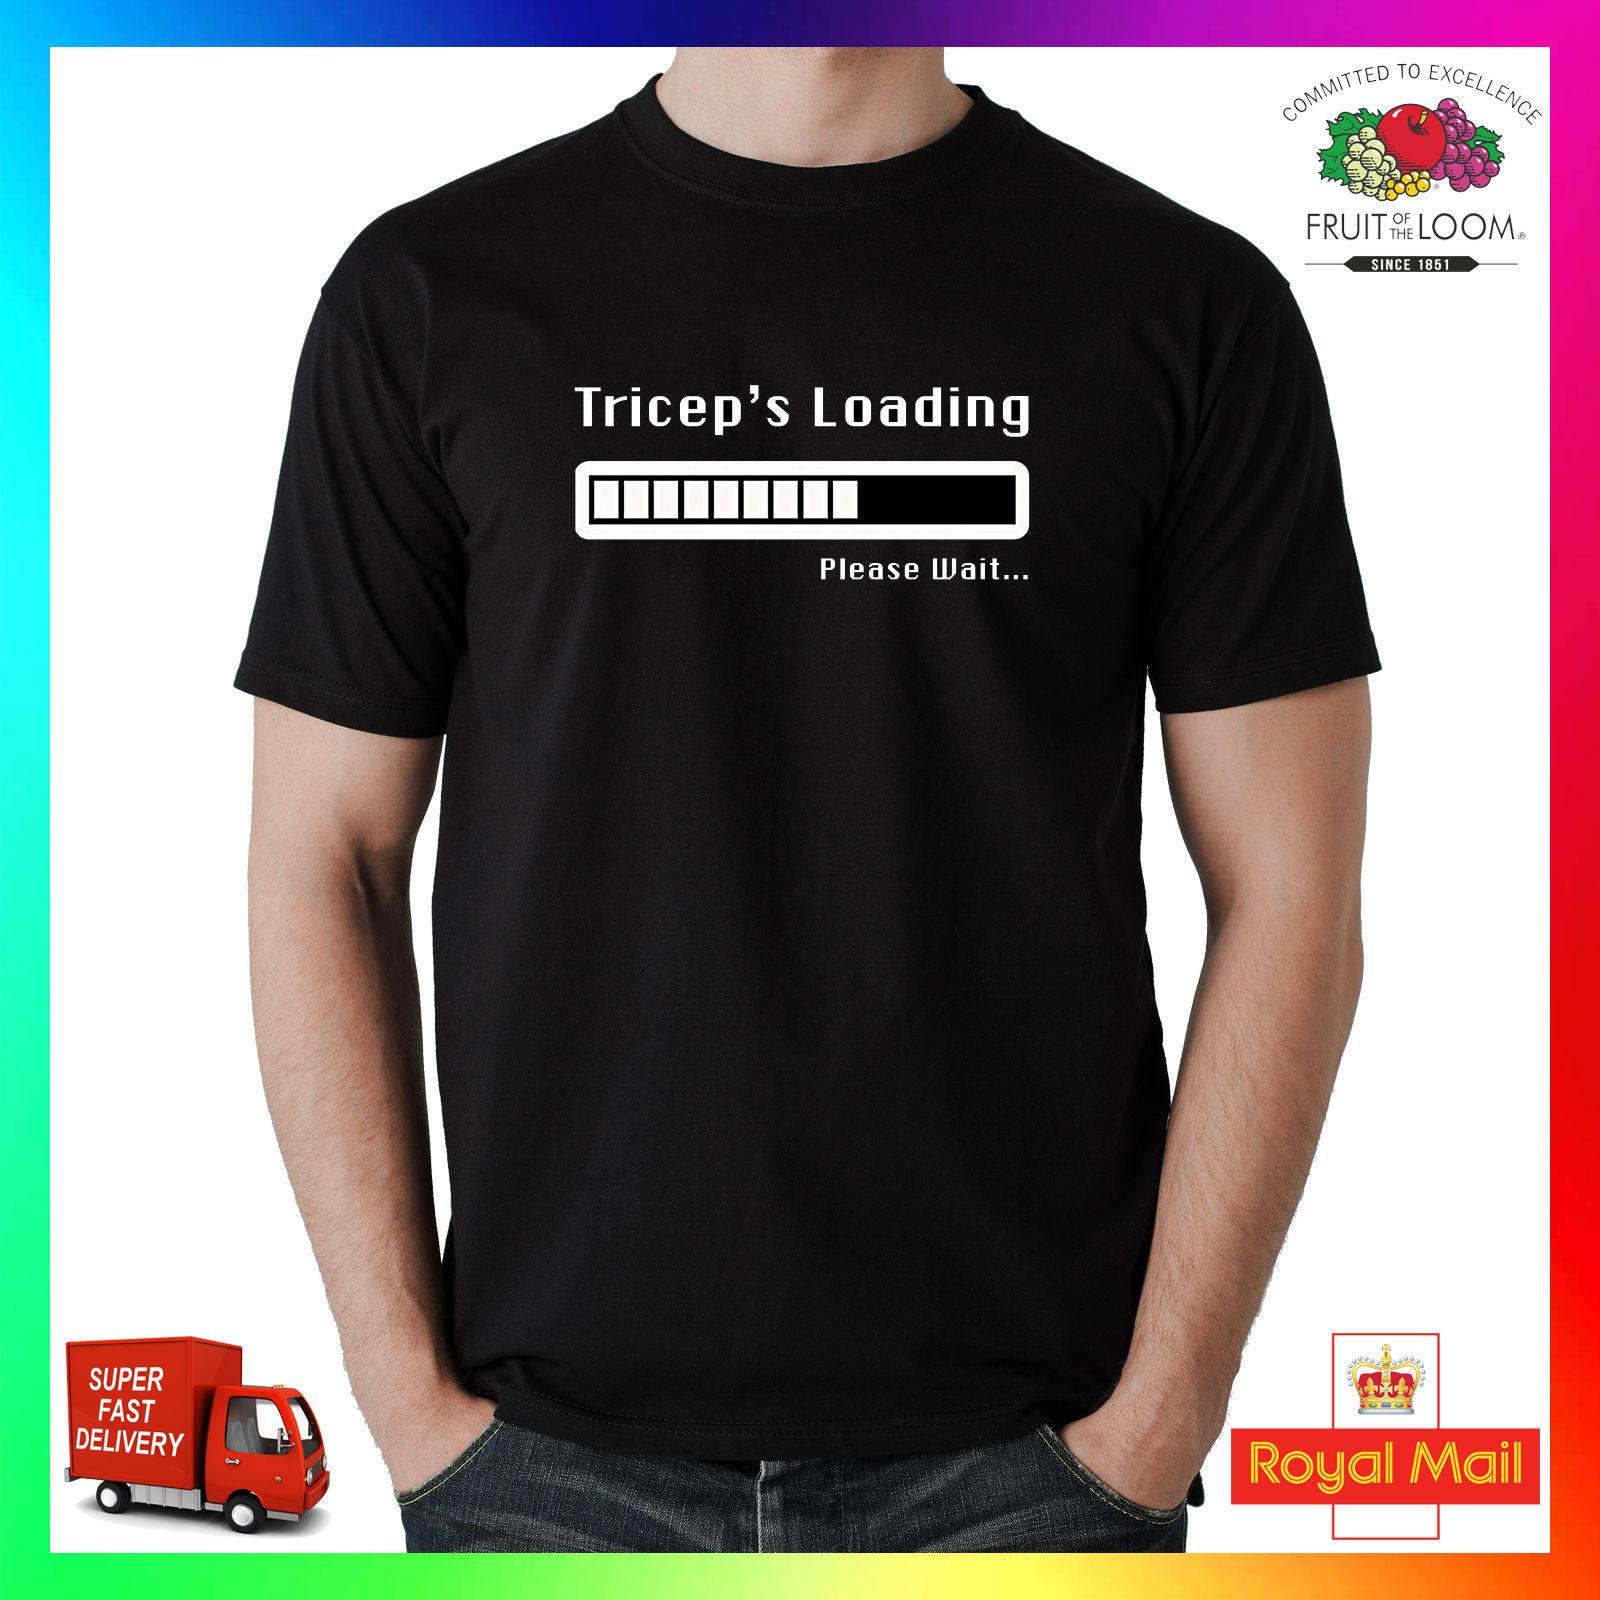 9f4f0e1844c Triceps Loading Please Wait T Shirt Tee Arms MMA Workout Gym Pre Best  Motivation Trendy T Shirts For Men Shirts Funny From Sevenshopping